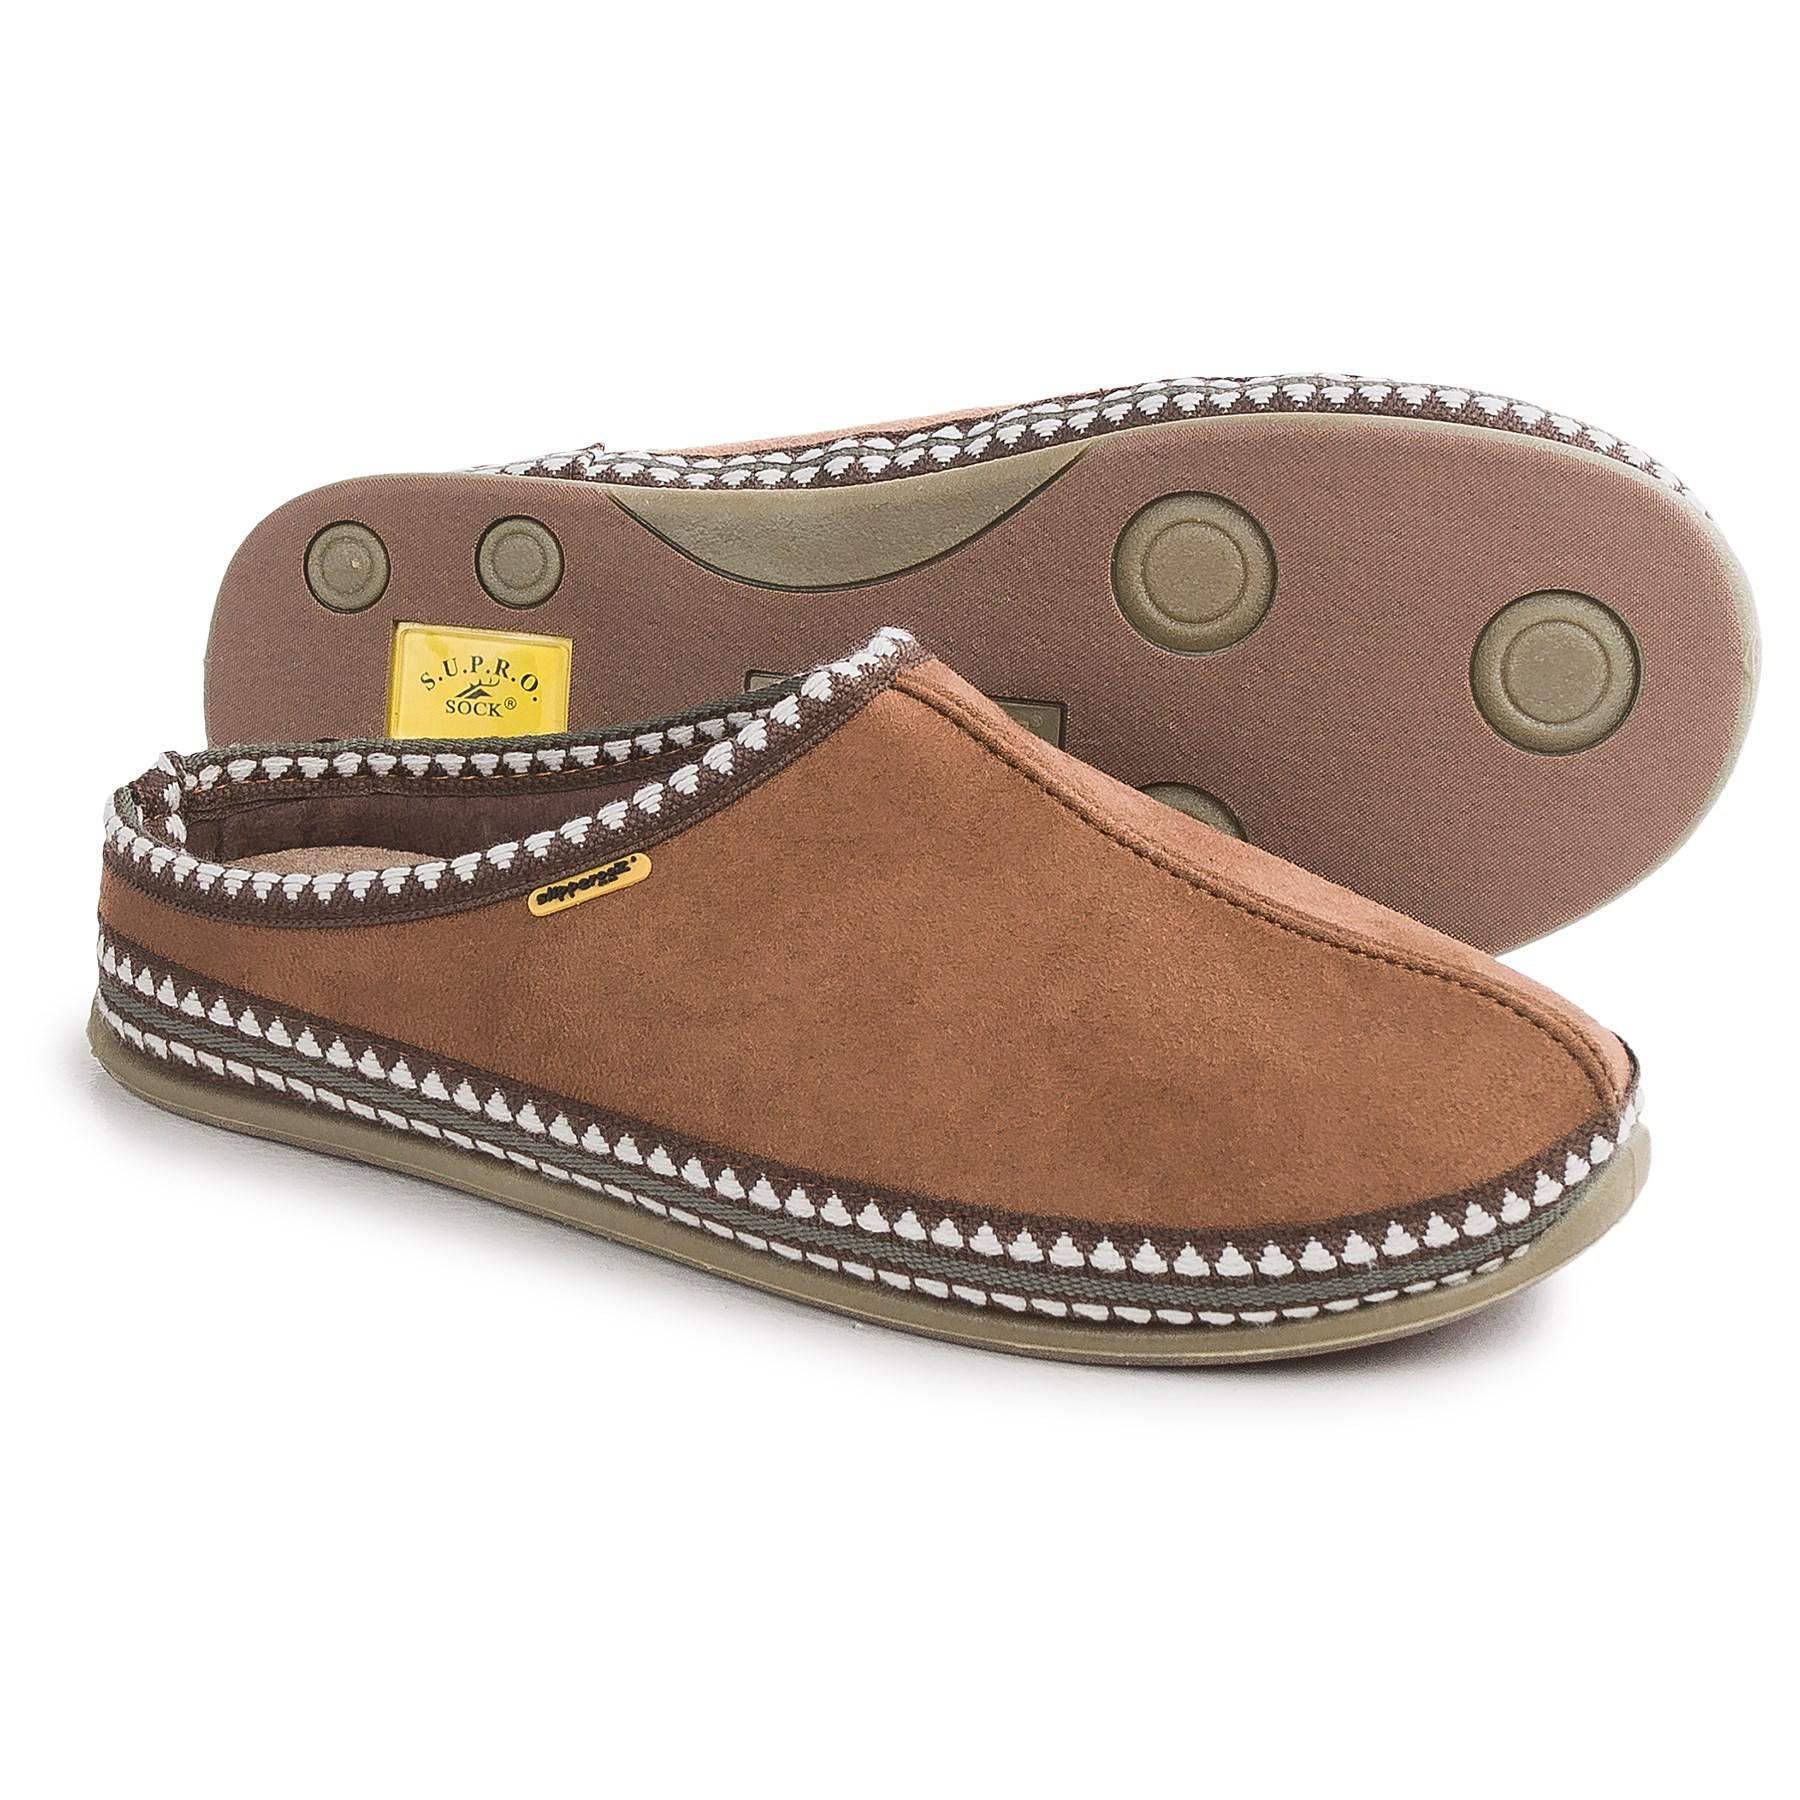 1a29b0f1792 Lyst deer stags explorer slippers for men in brown for men jpg 1800x1800 Deer  stag slippers